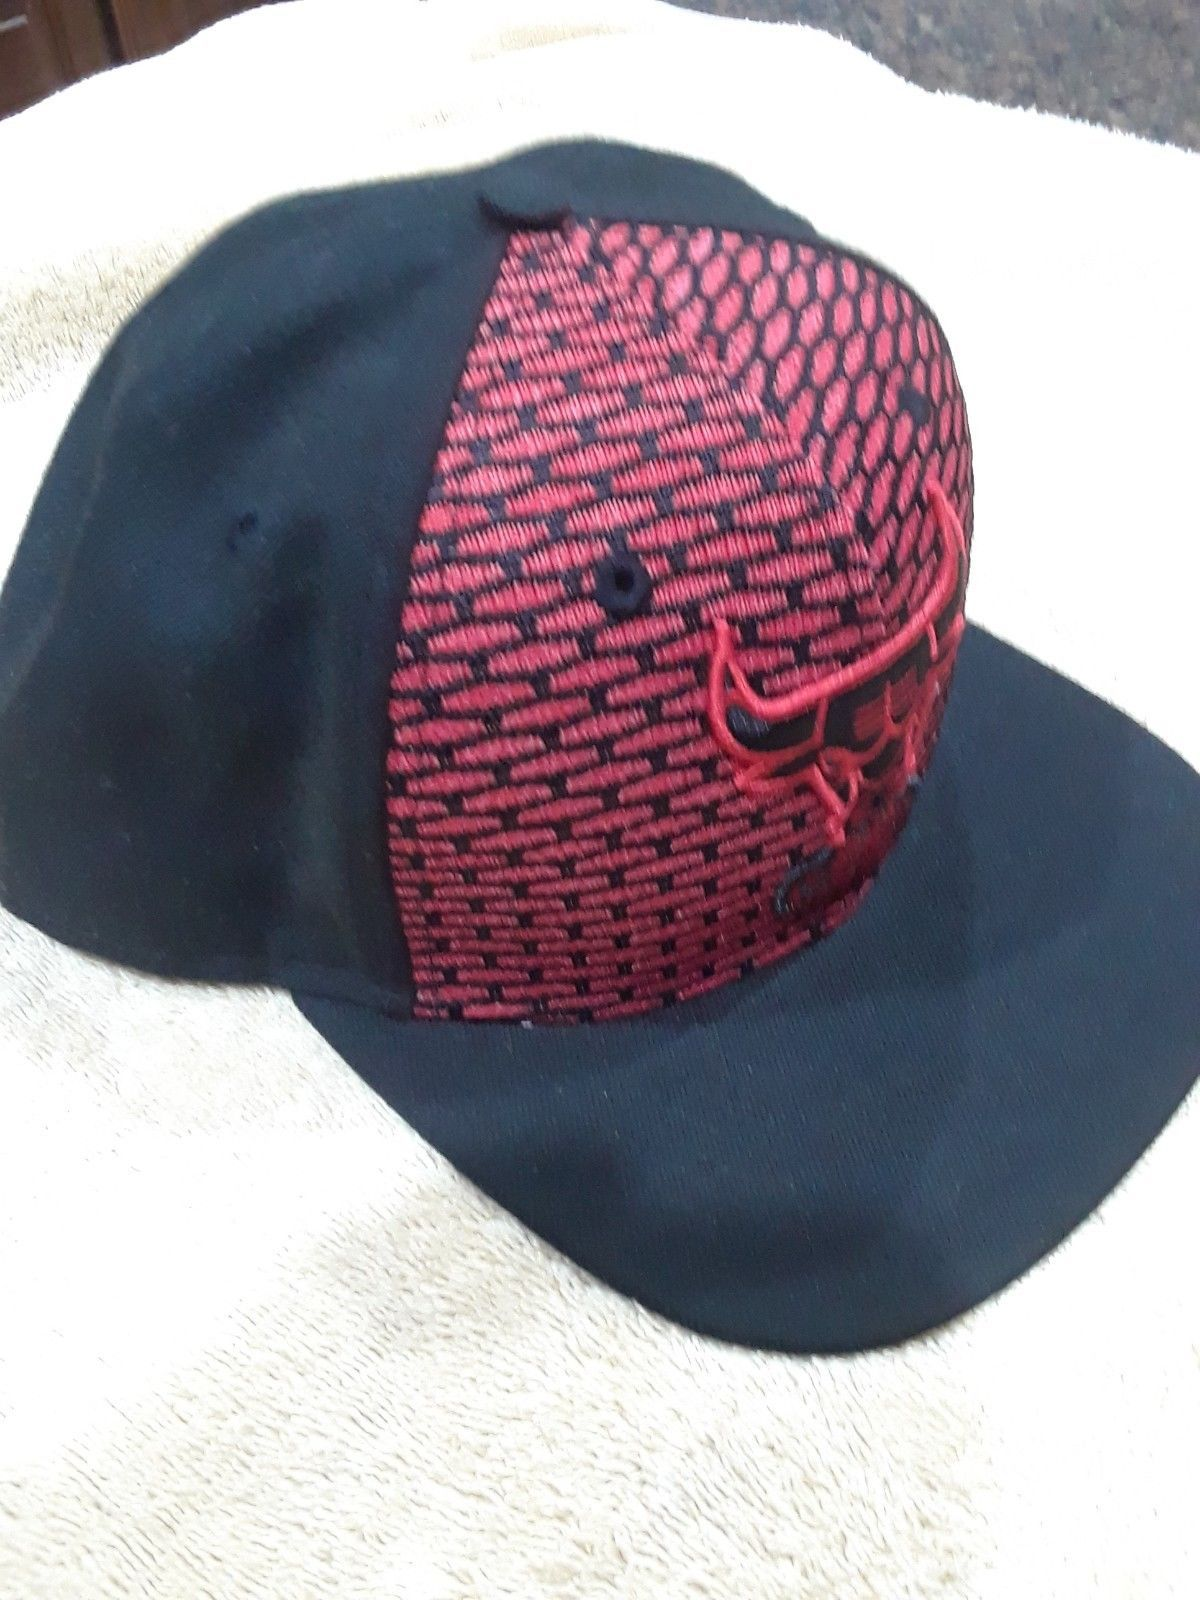 CHICAGO BULLS New Era 9FIFTY Black Red WINDY CITY Adjustable CAP HAT NBA